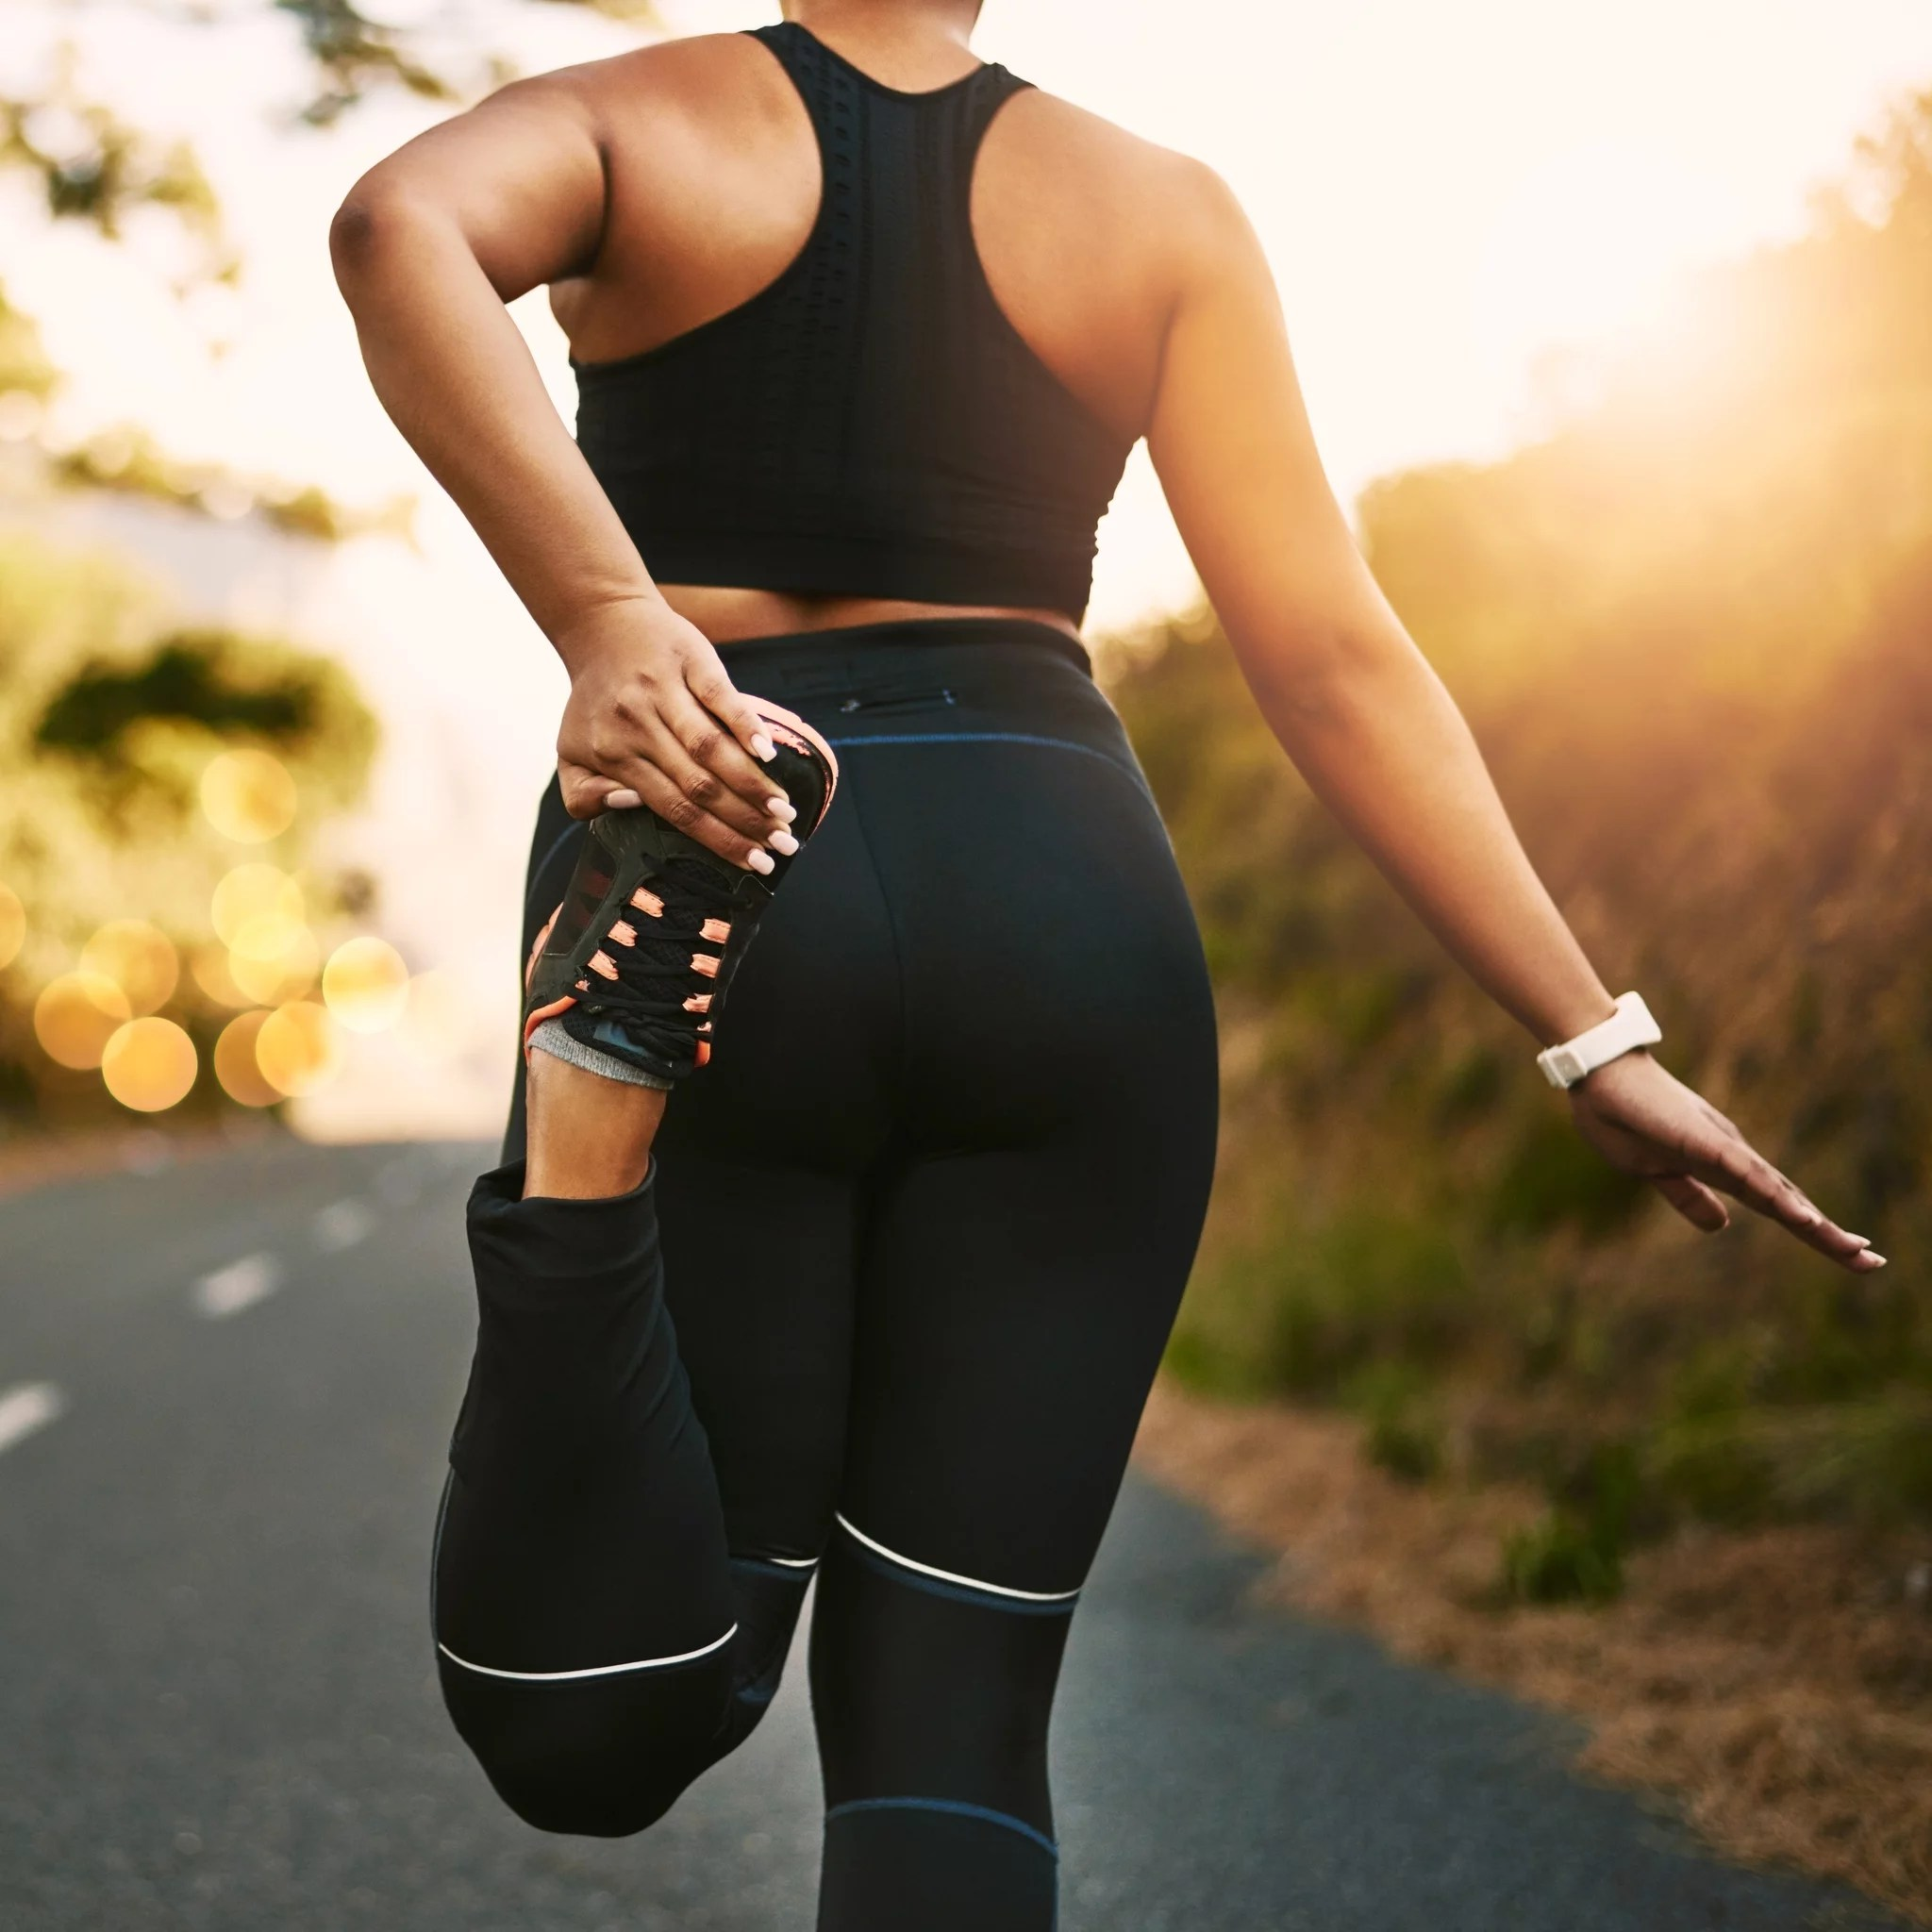 Make up your mind in sports. Four Week Workout Plan For Weight Loss Popsugar Fitness